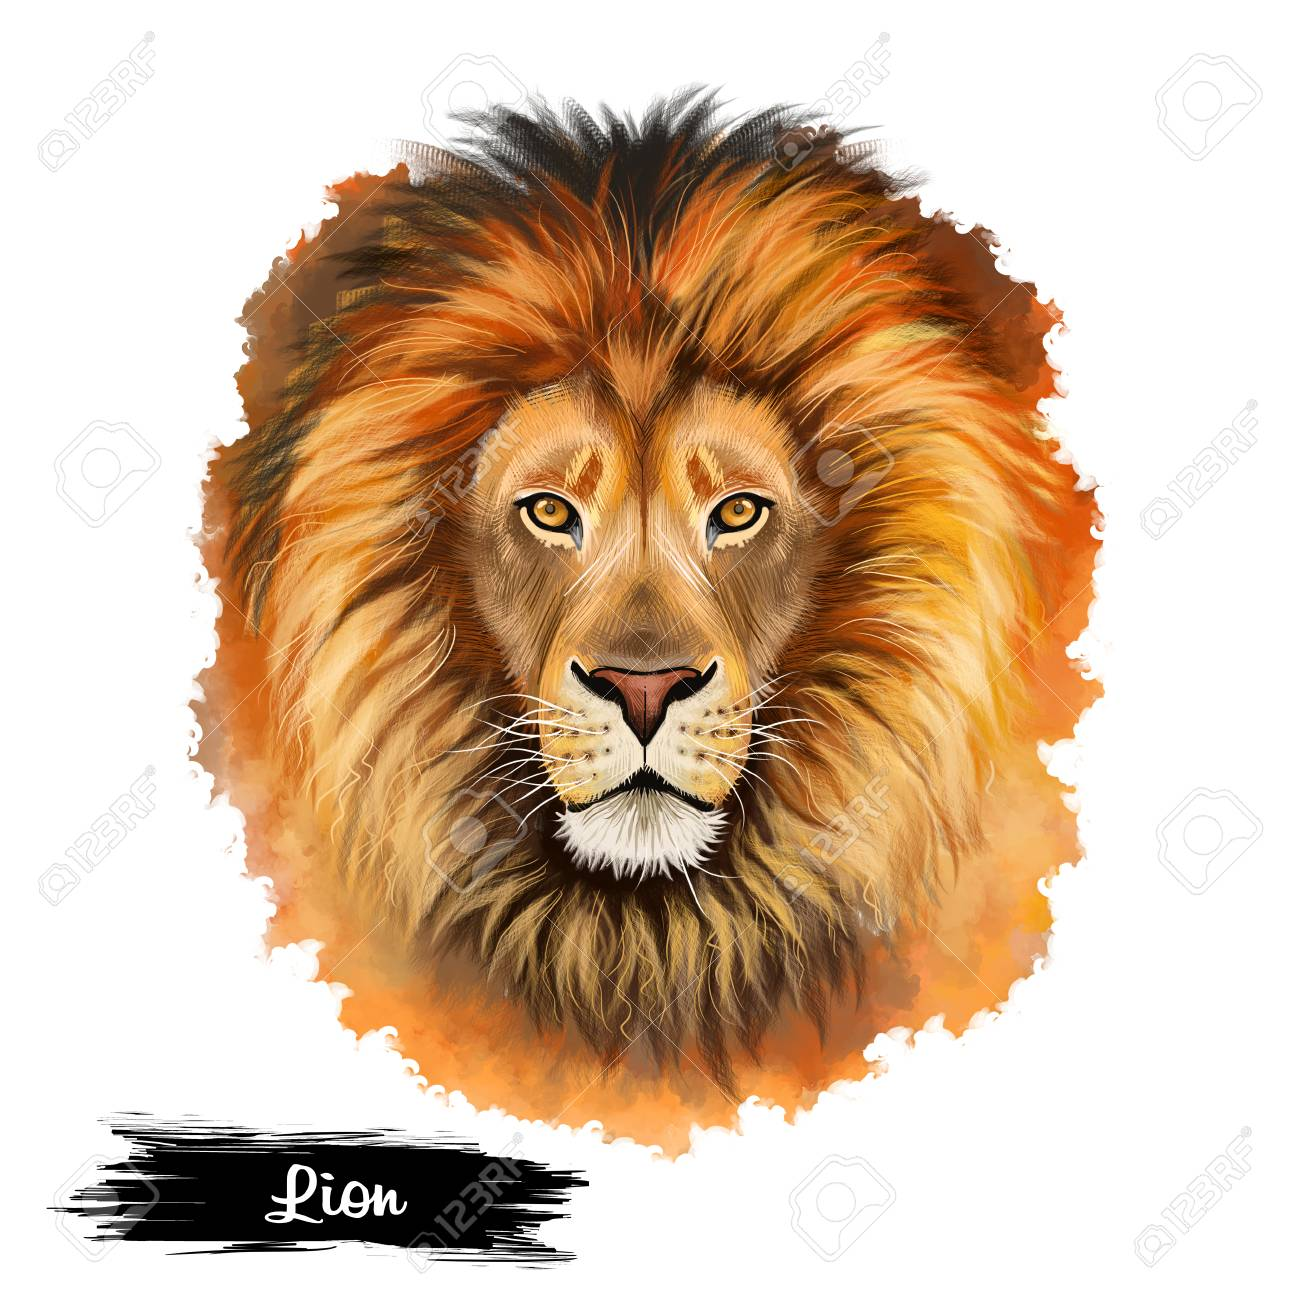 Lion Head Isolated On White Background Digital Art Illustration Stock Photo Picture And Royalty Free Image Image 85898827